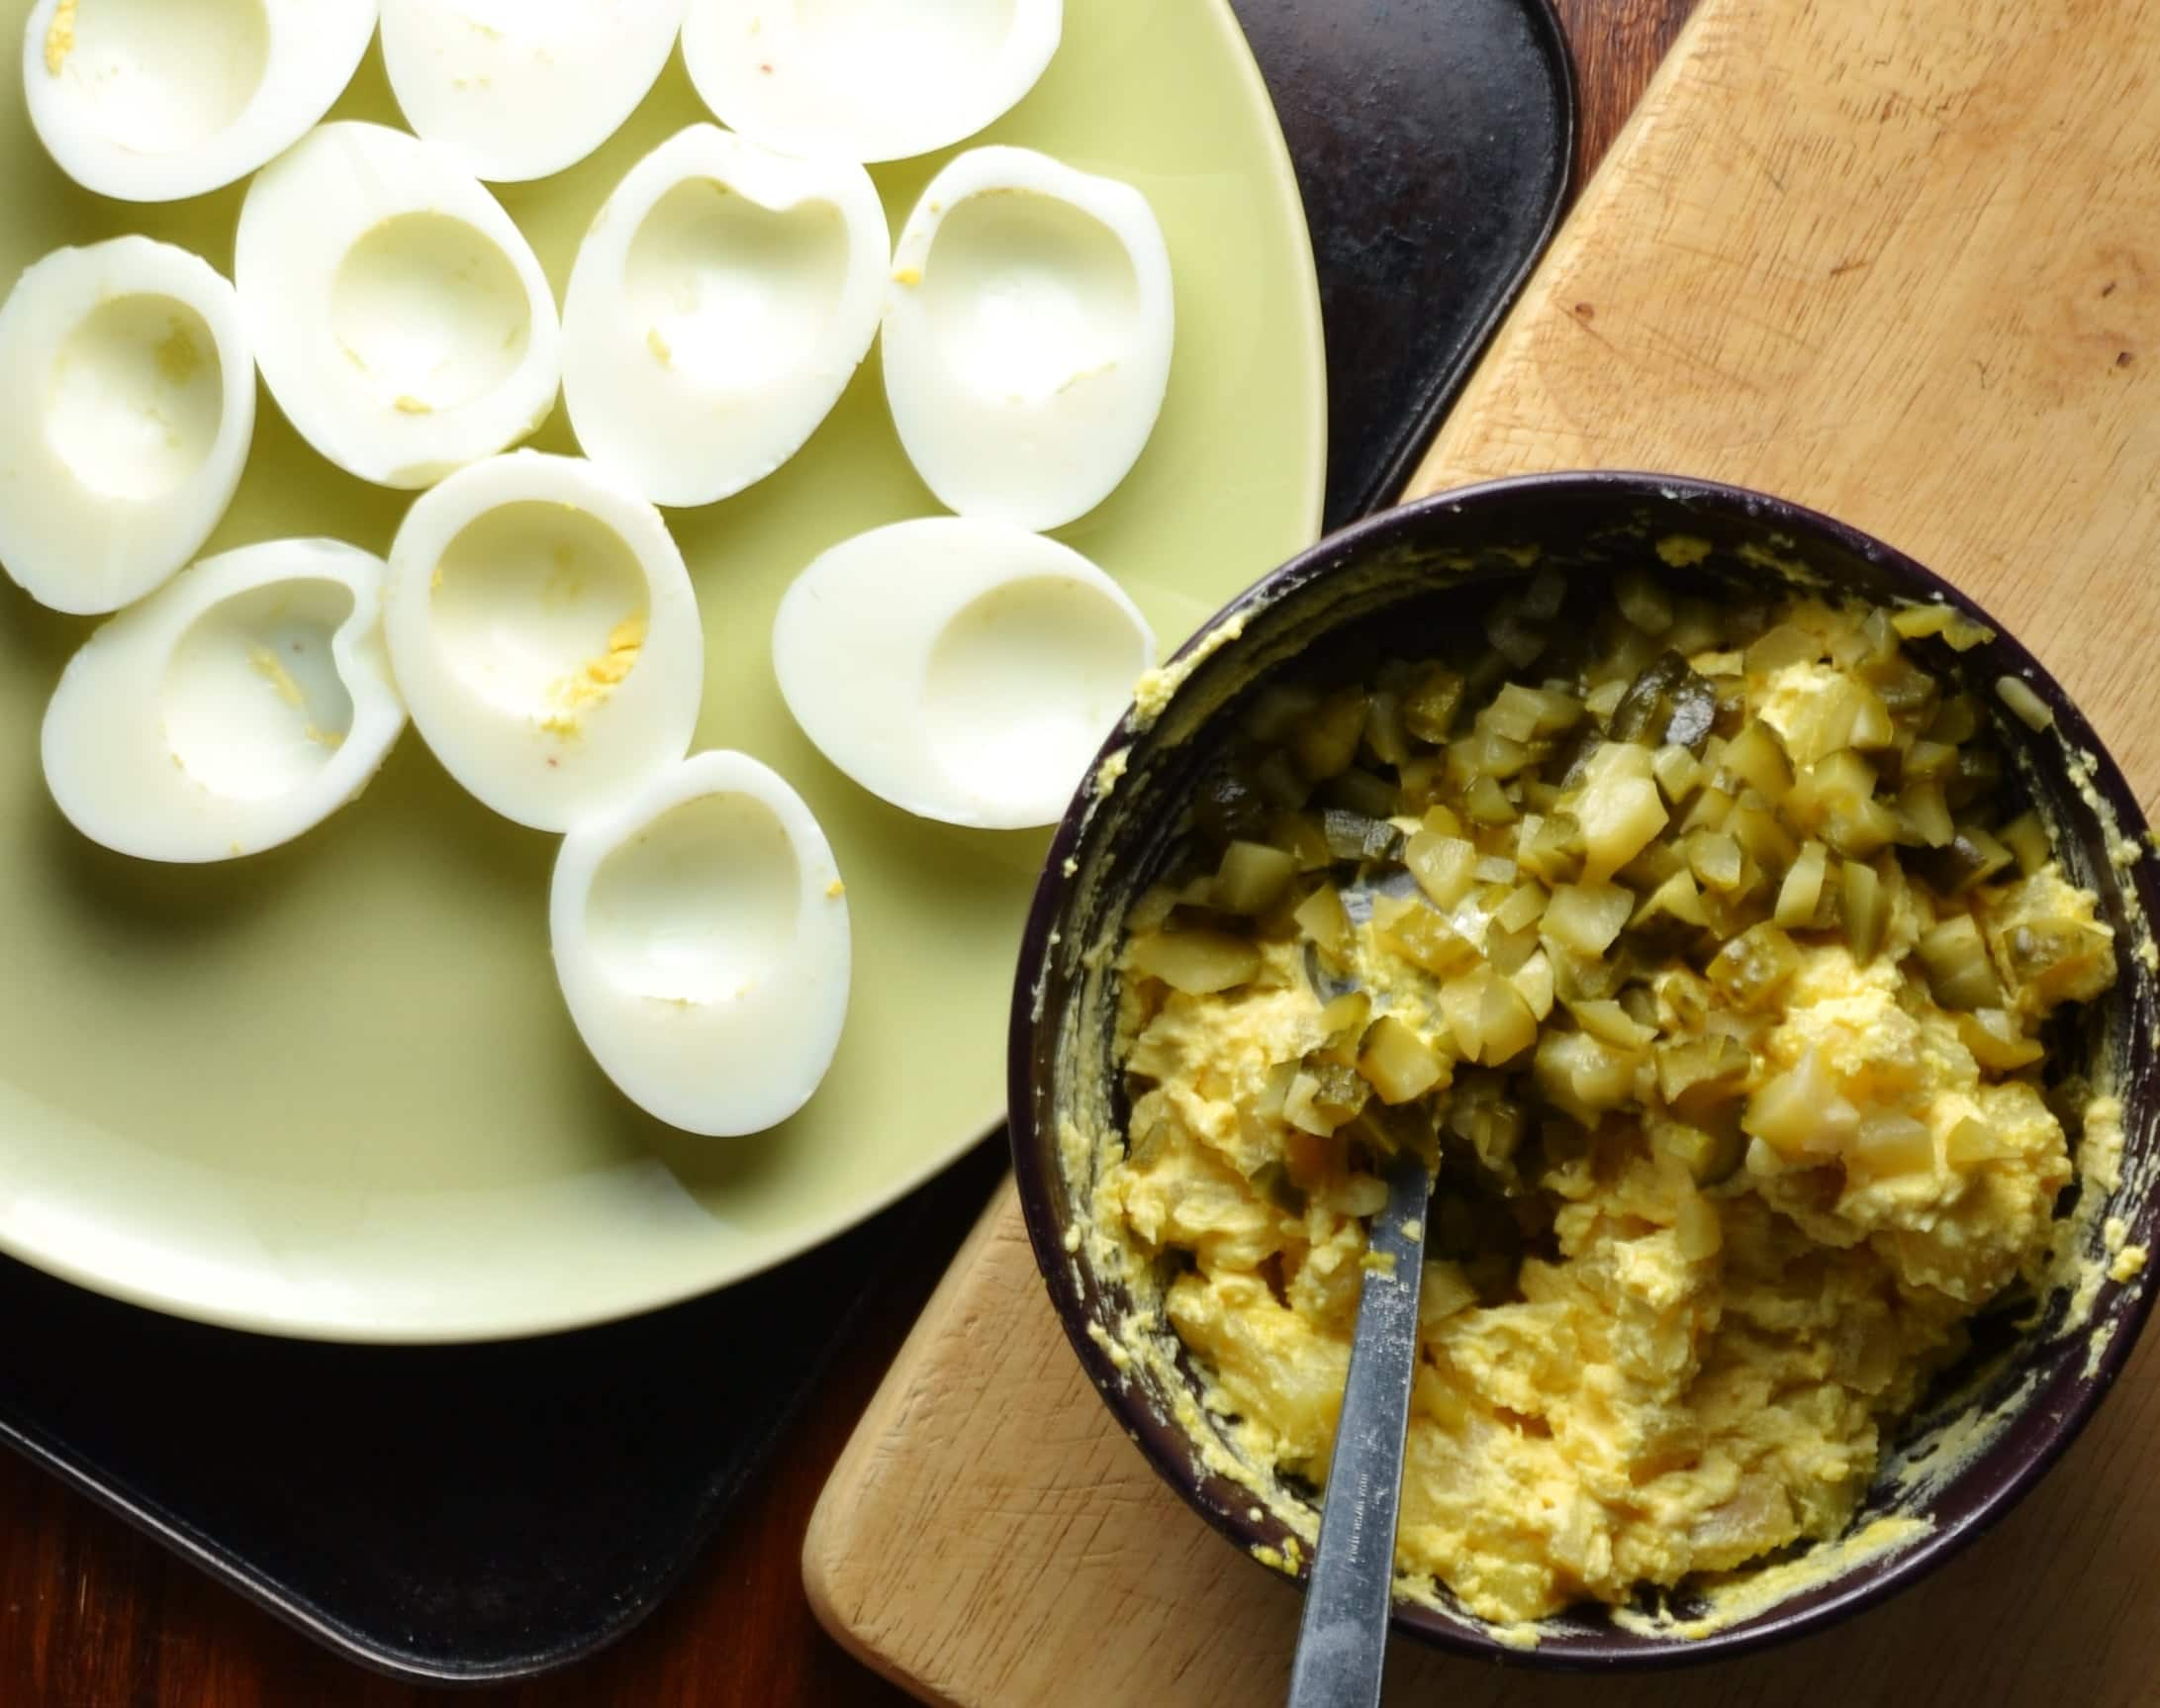 Potato salad filling in black bowl with spoon on cutting board and egg halves without yolks on green plate.